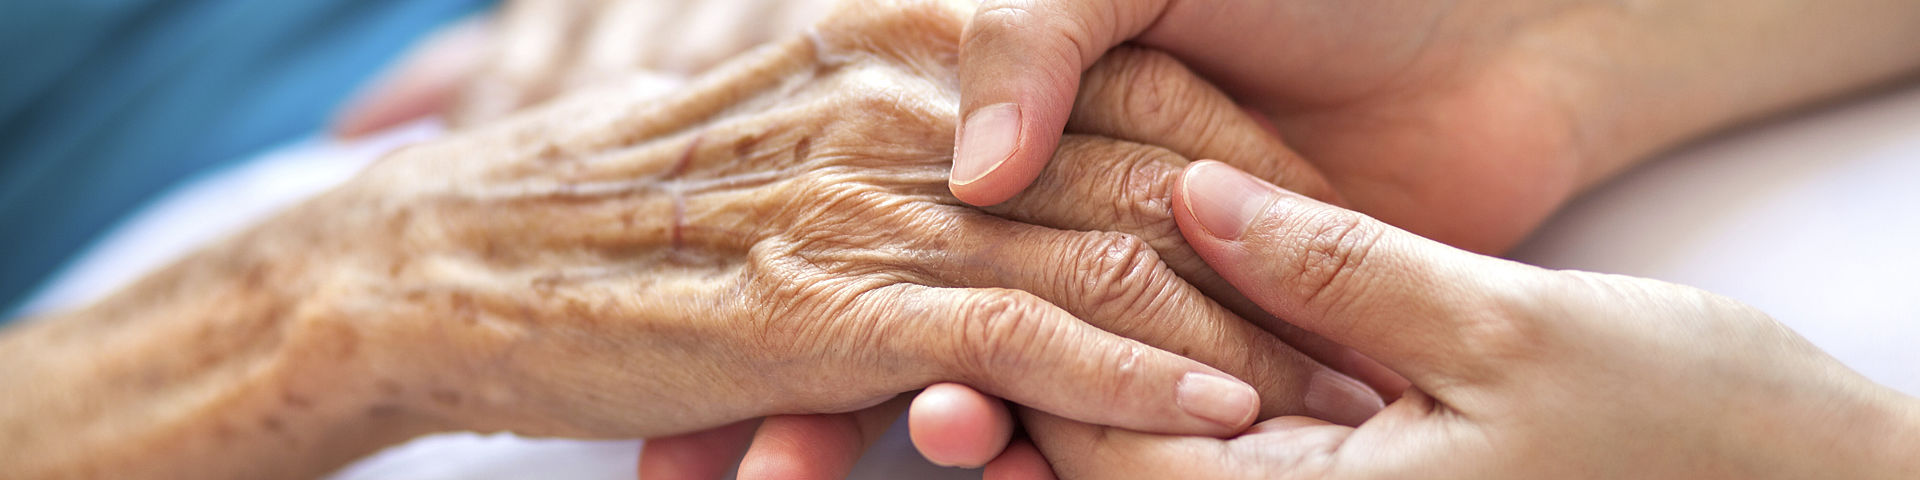 Parkinson's and Movement Disorders